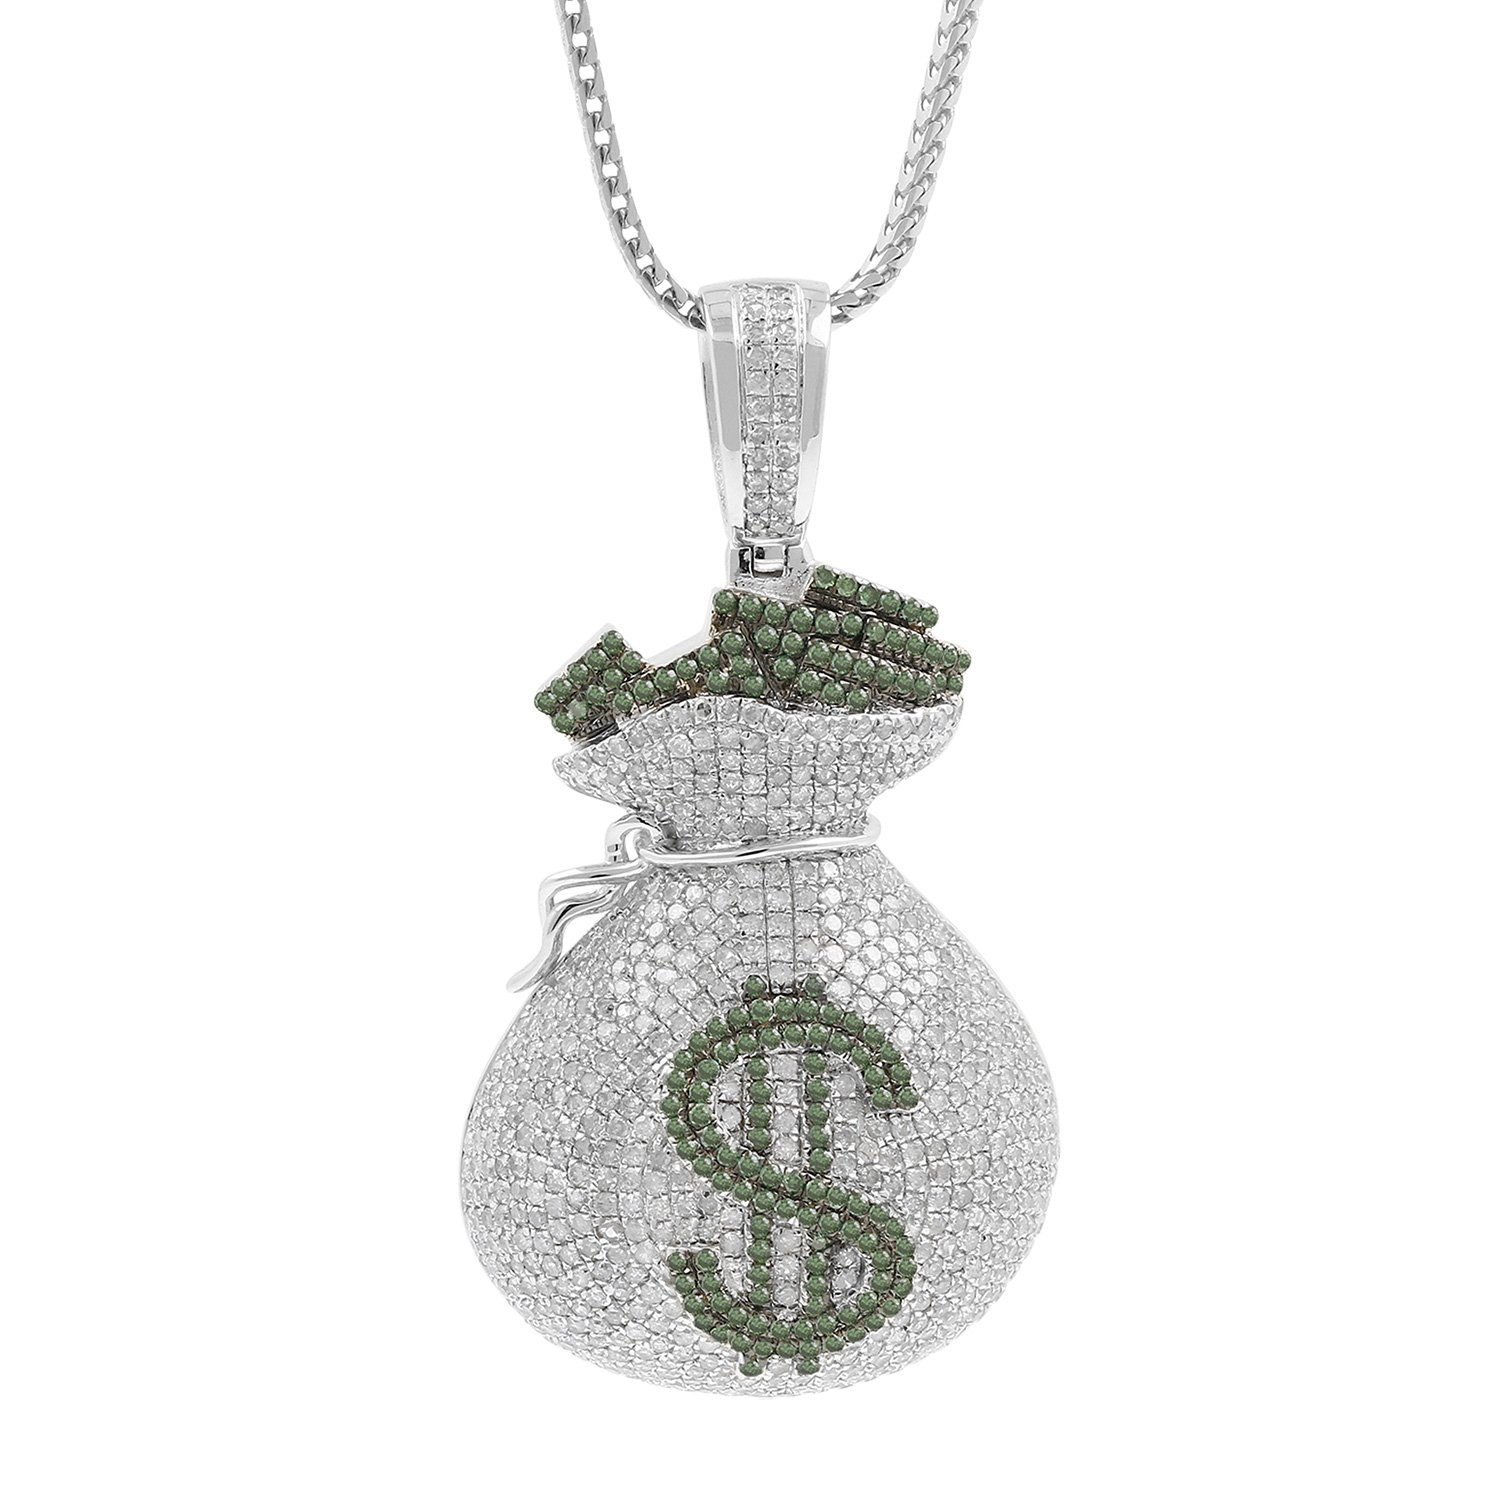 4.19ct Diamond Dollar Sign Money Bag Mens Hip Hop Pendant Necklace in 925 Silver